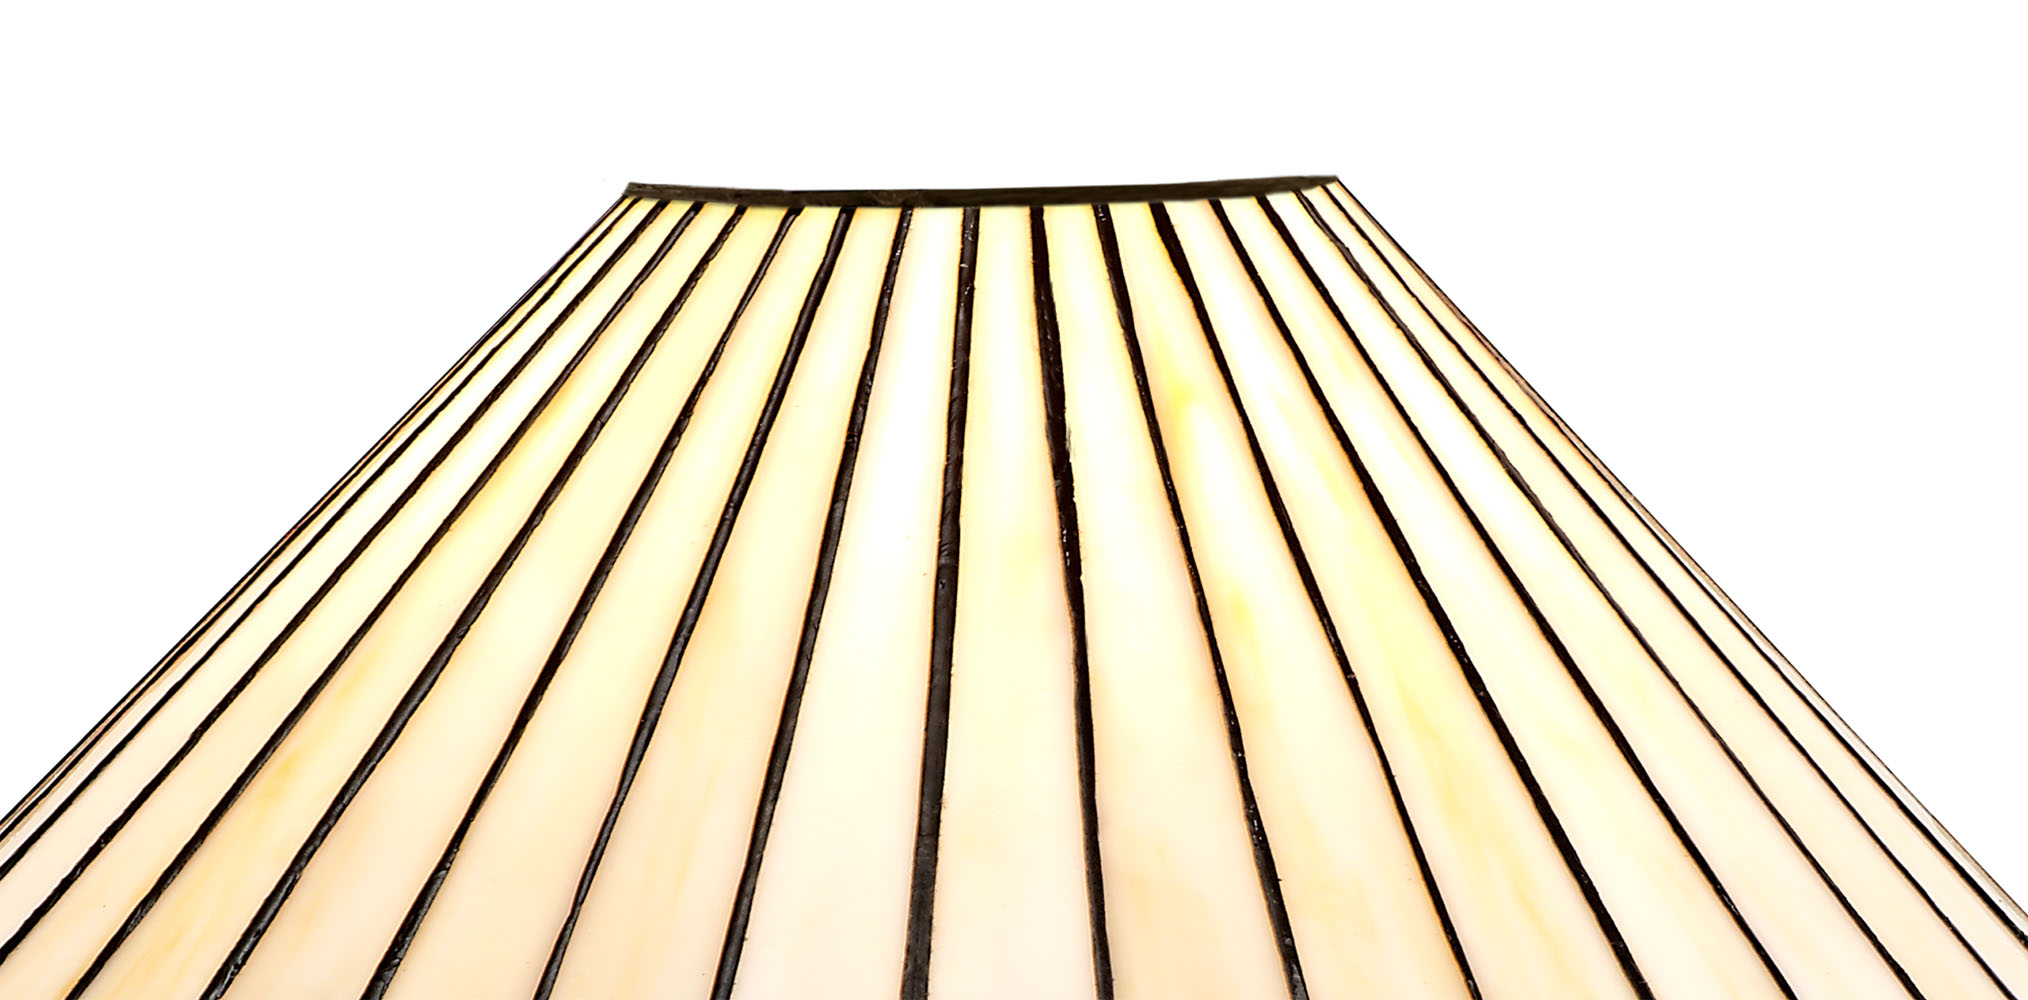 1 Light Curved Table Lamp E27 With 30cm Tiffany Shade, Amber/C/Crystal/Aged Antique Brass